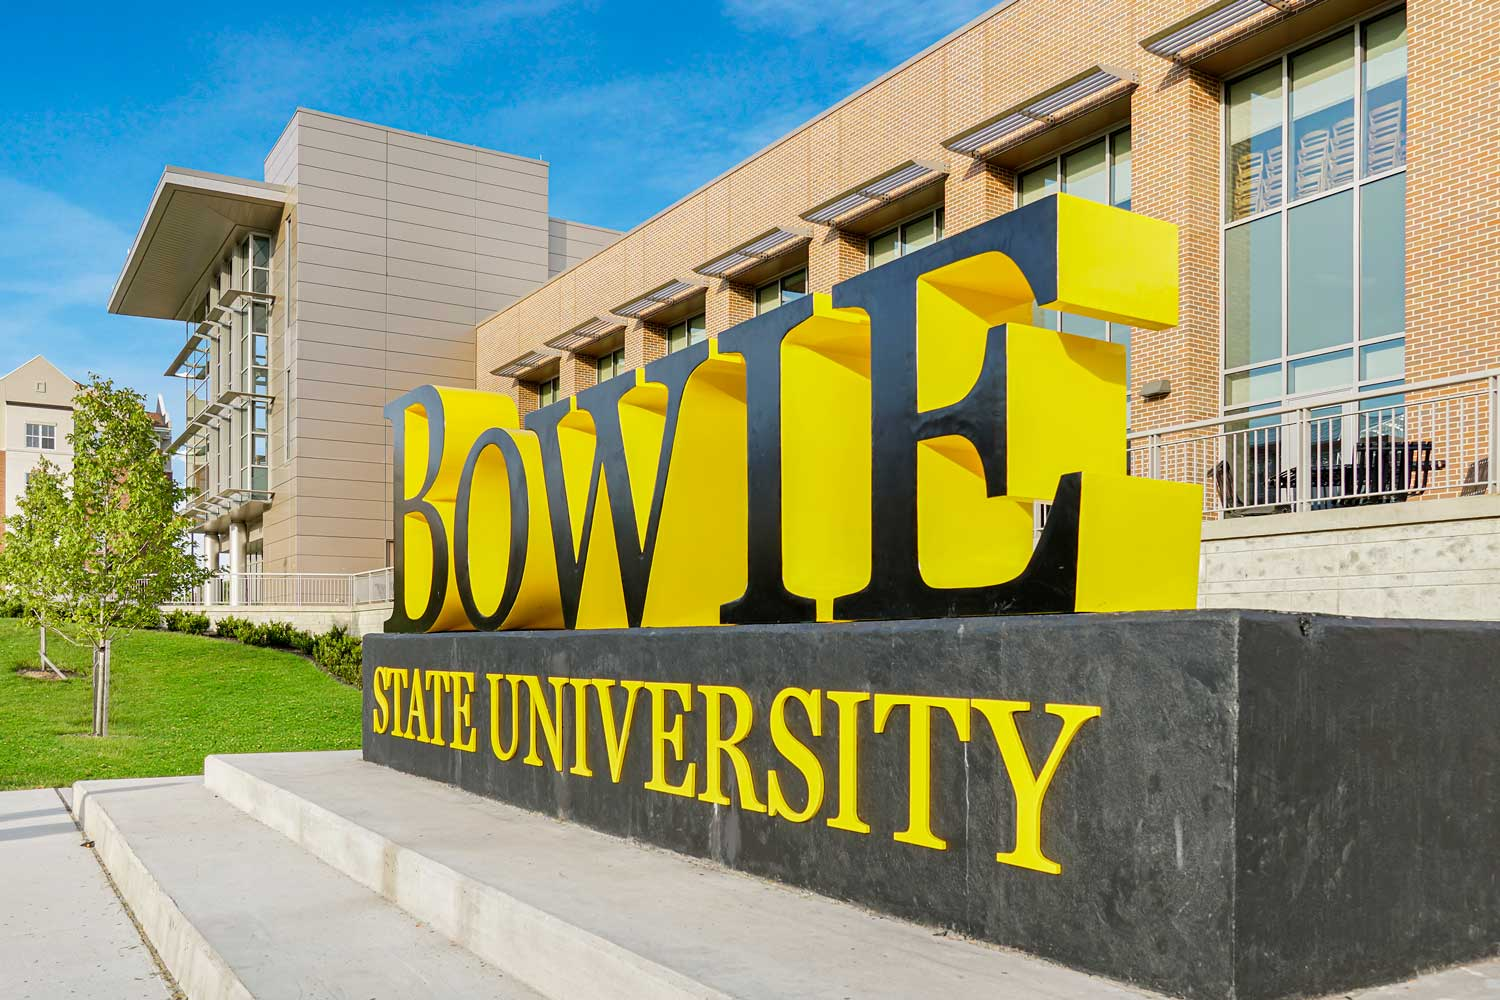 15 minutes to Bowie State University